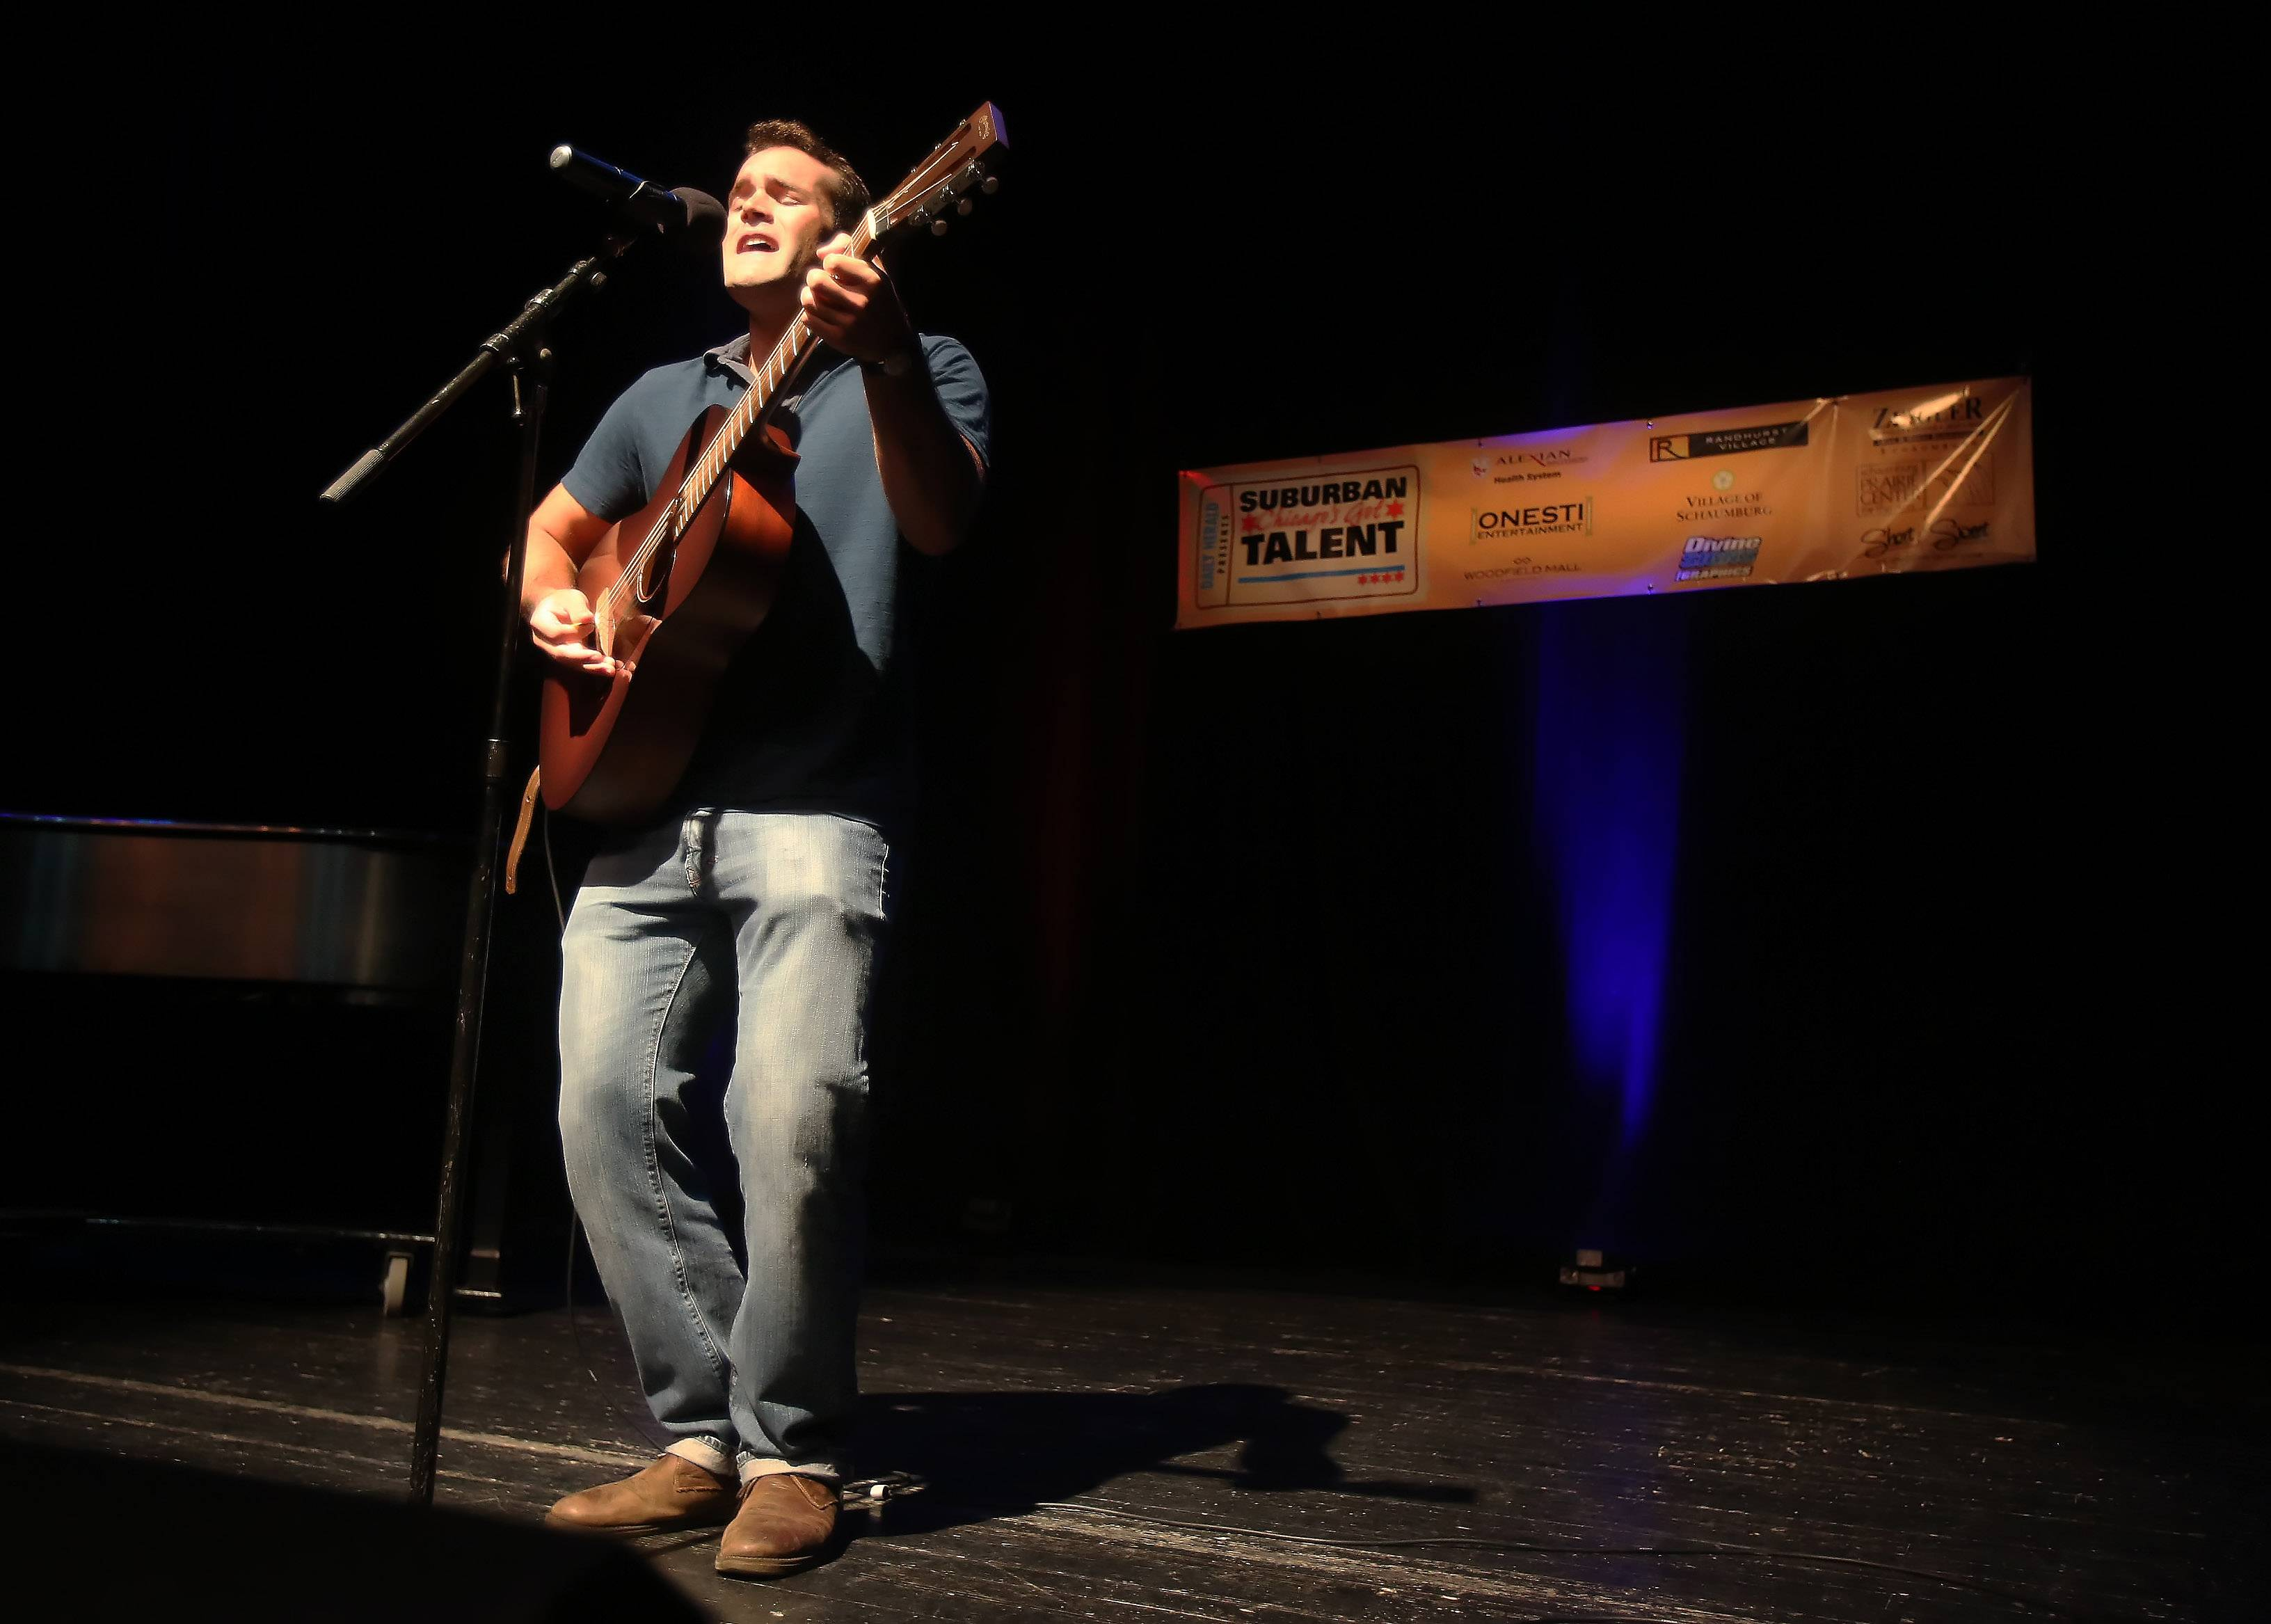 Dennis Caravello of Mount Prospect performs during Sunday's performance of the top 20 finalists of the Suburban Chicago's Got Talent competition Sunday at the Prairie Center for the Arts in Schaumburg.